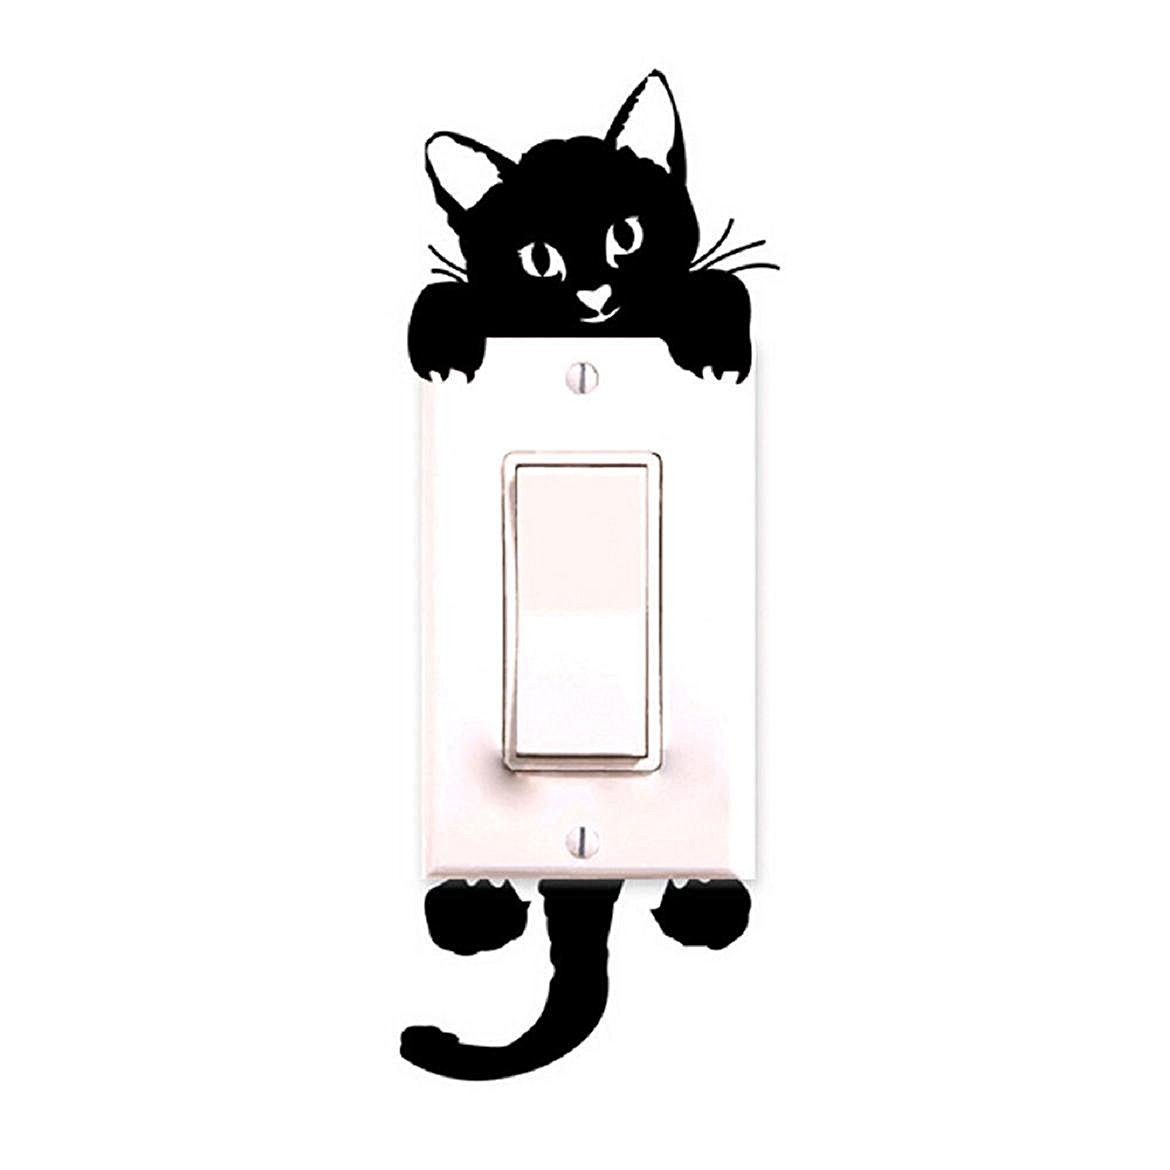 Amazon susenstone catwall stickers light switch decor amazon susenstone catwall stickers light switch decor decals art mural baby nursery room beauty amipublicfo Gallery